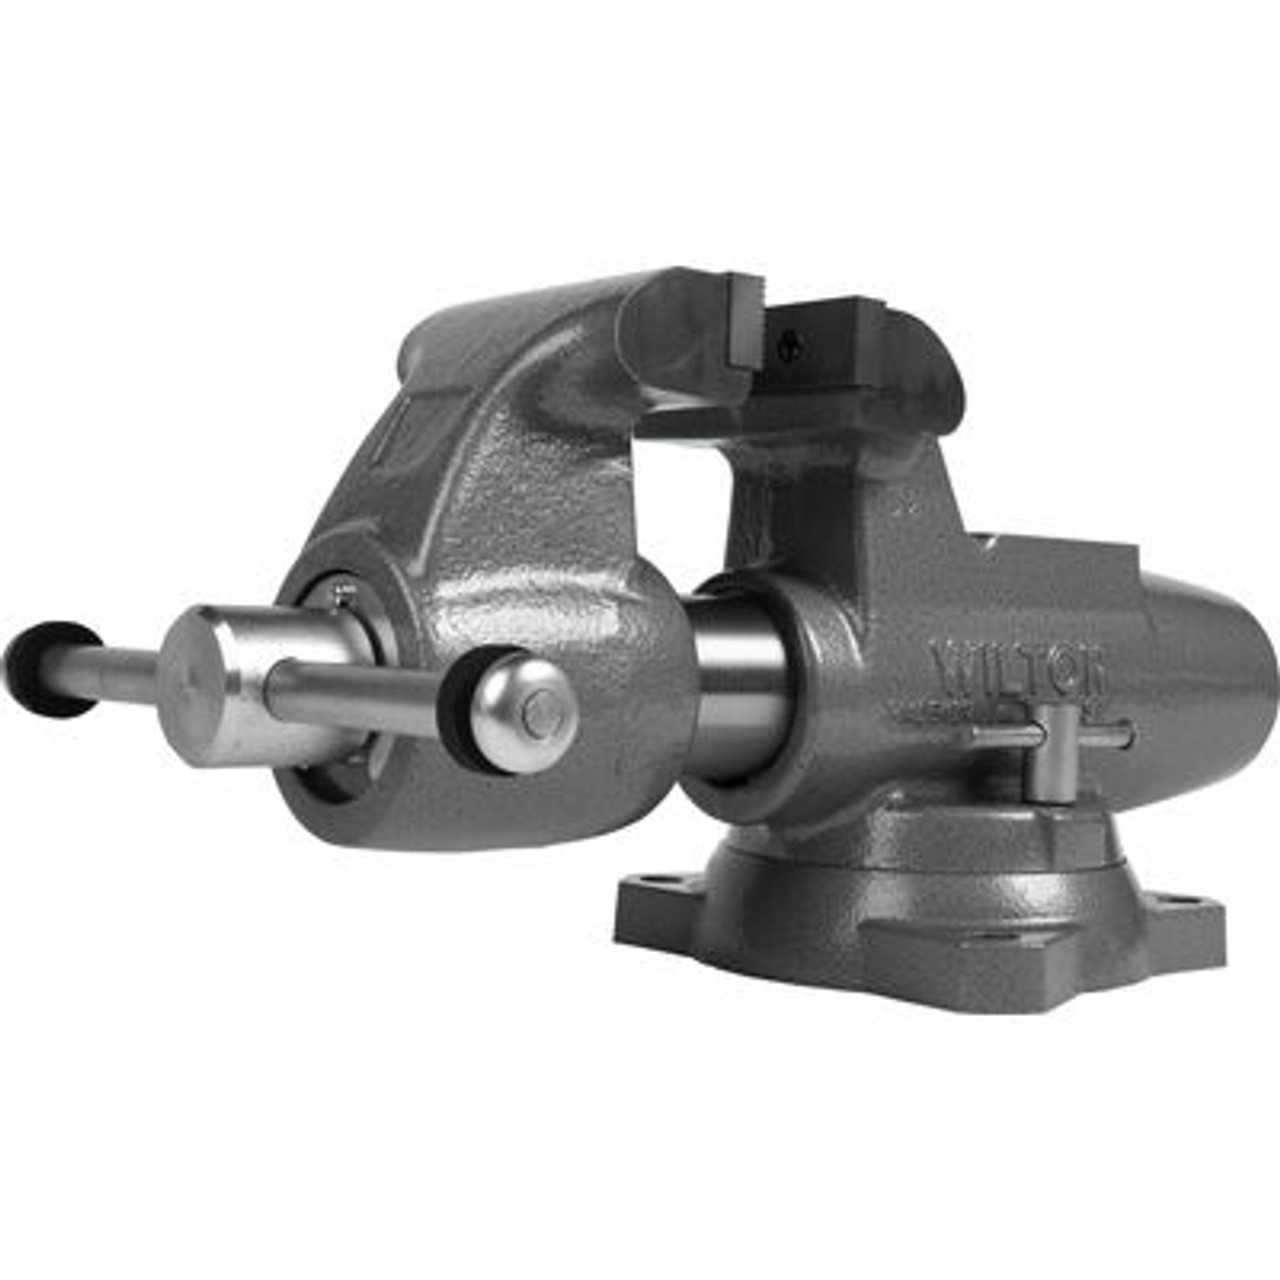 Wondrous Wilton 28832 500S Machinist 5 Jaw Round Channel Vise With Swivel Base Short Links Chair Design For Home Short Linksinfo